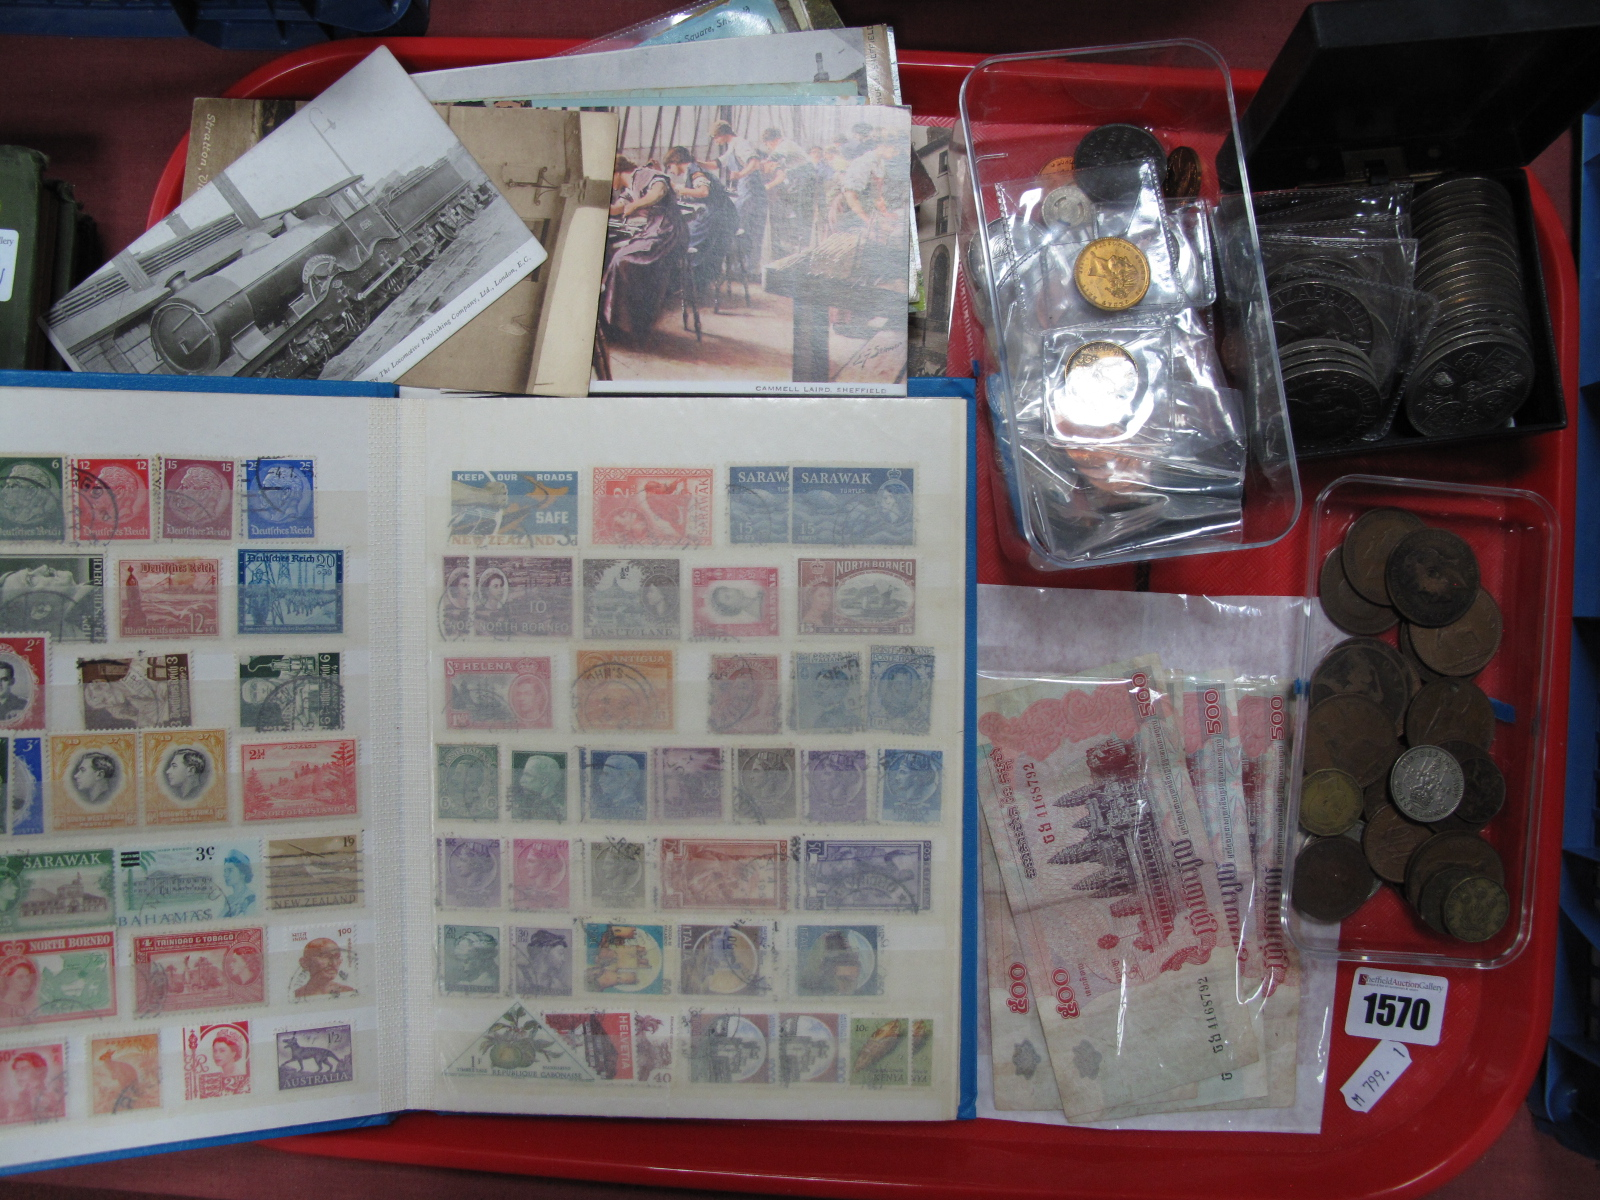 Lot 1570 - Postcards, S & G stamp album, quantity of coinage, Cambodian banknotes, etc:- One Tray